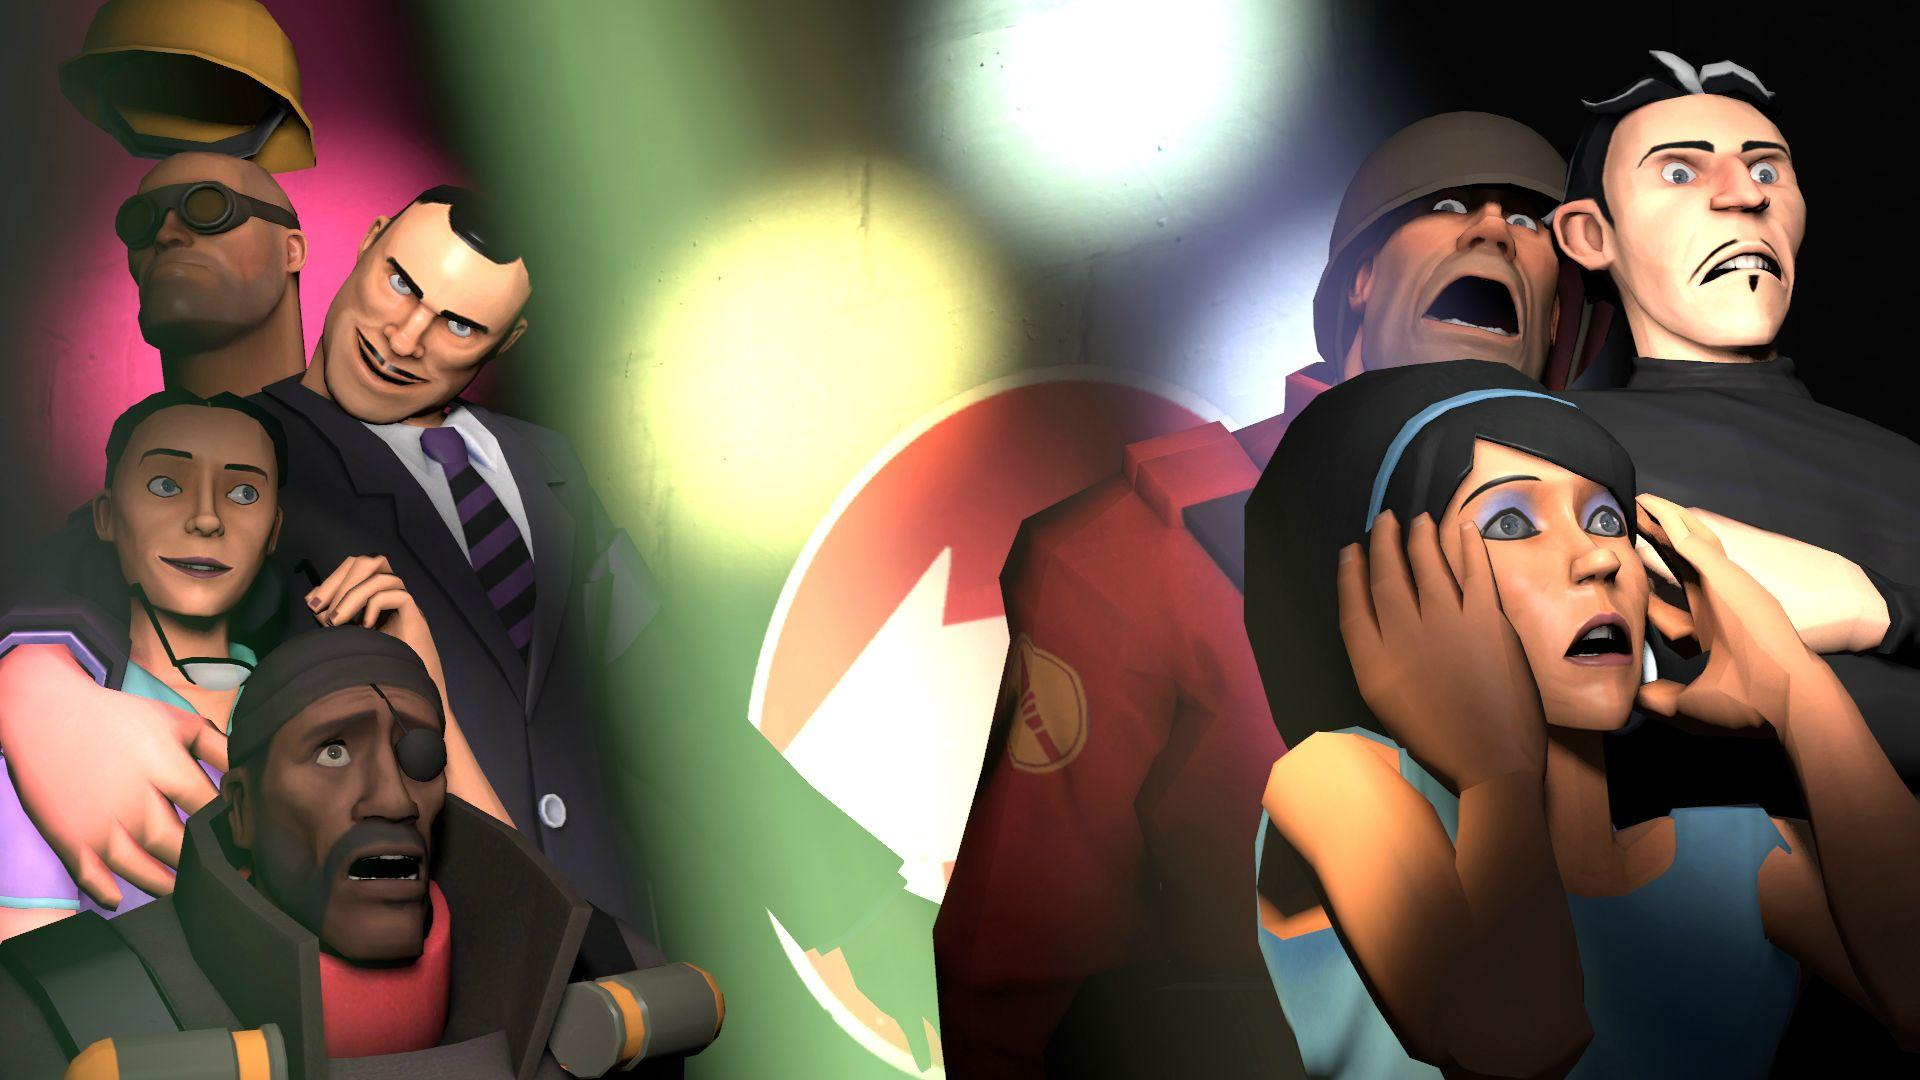 A picture of Team Fortress 2